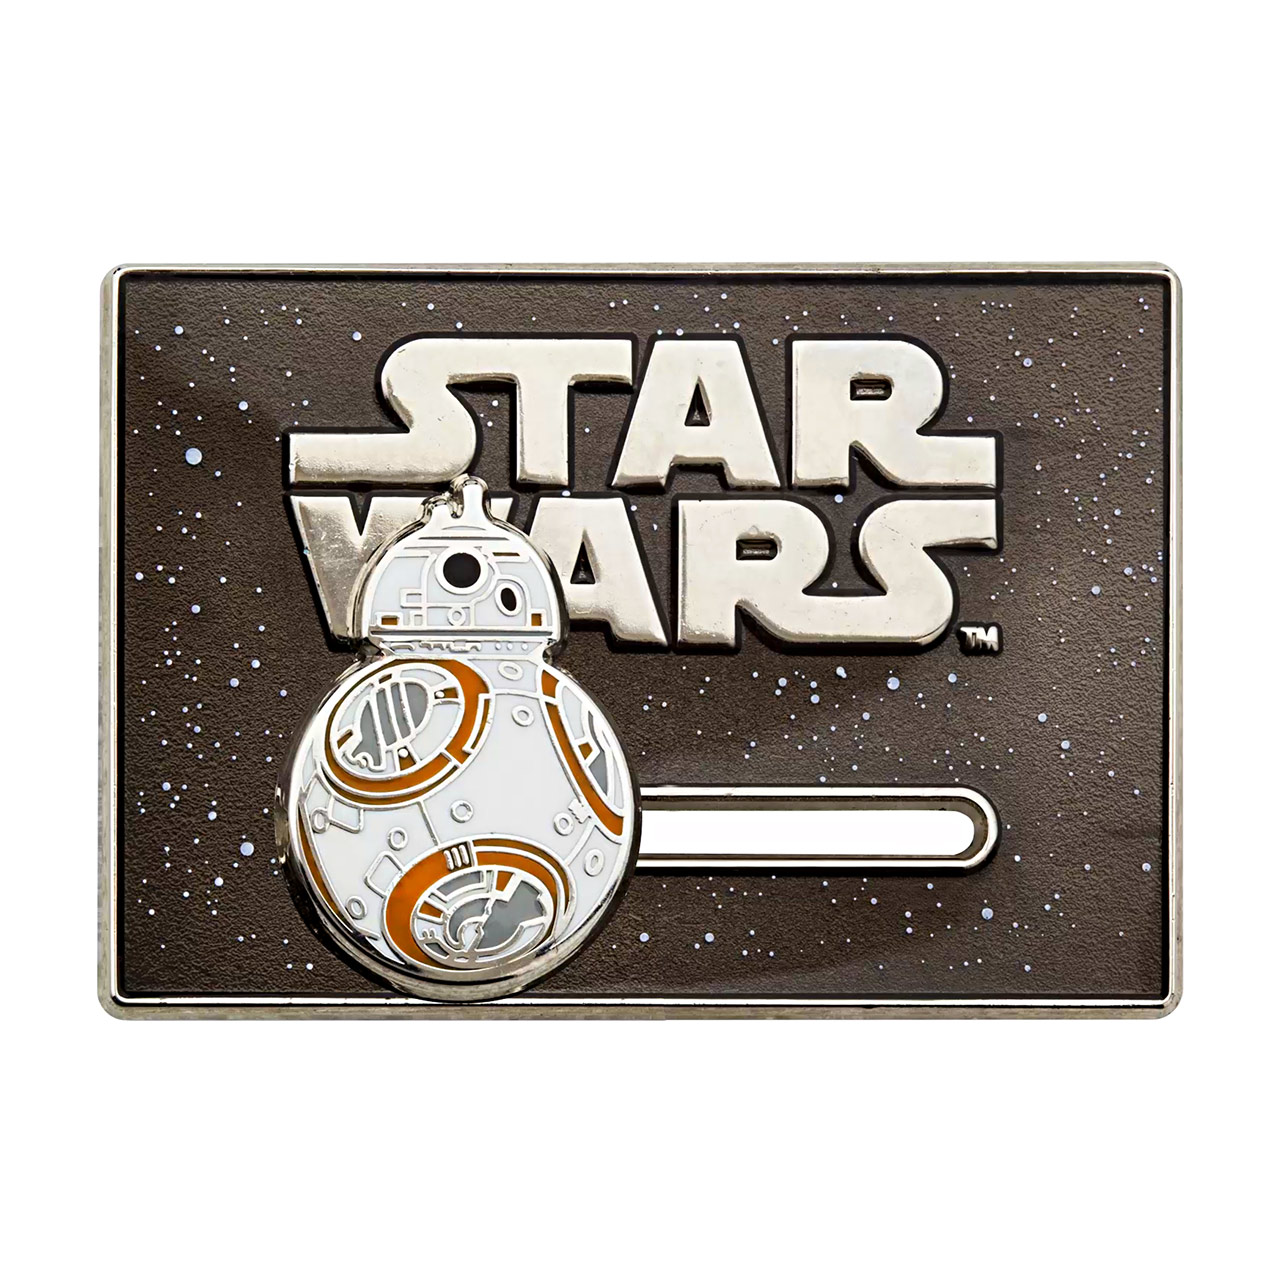 Star Wars Day: Disney Store To Host Force-Filled Star Wars Day Events